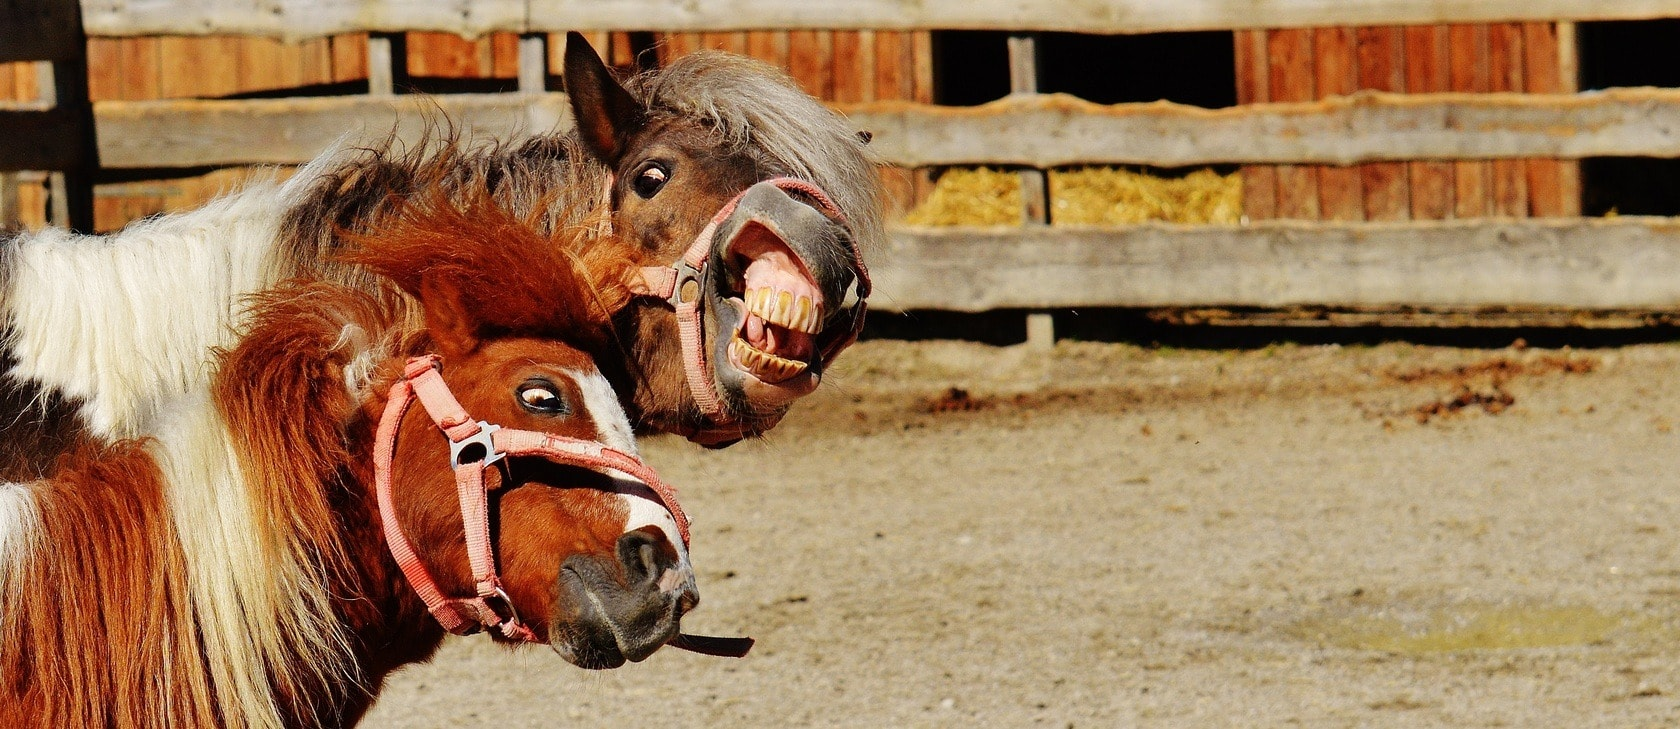 100 Funny Horse Names Ideas For Comical Silly Horses Pet Keen